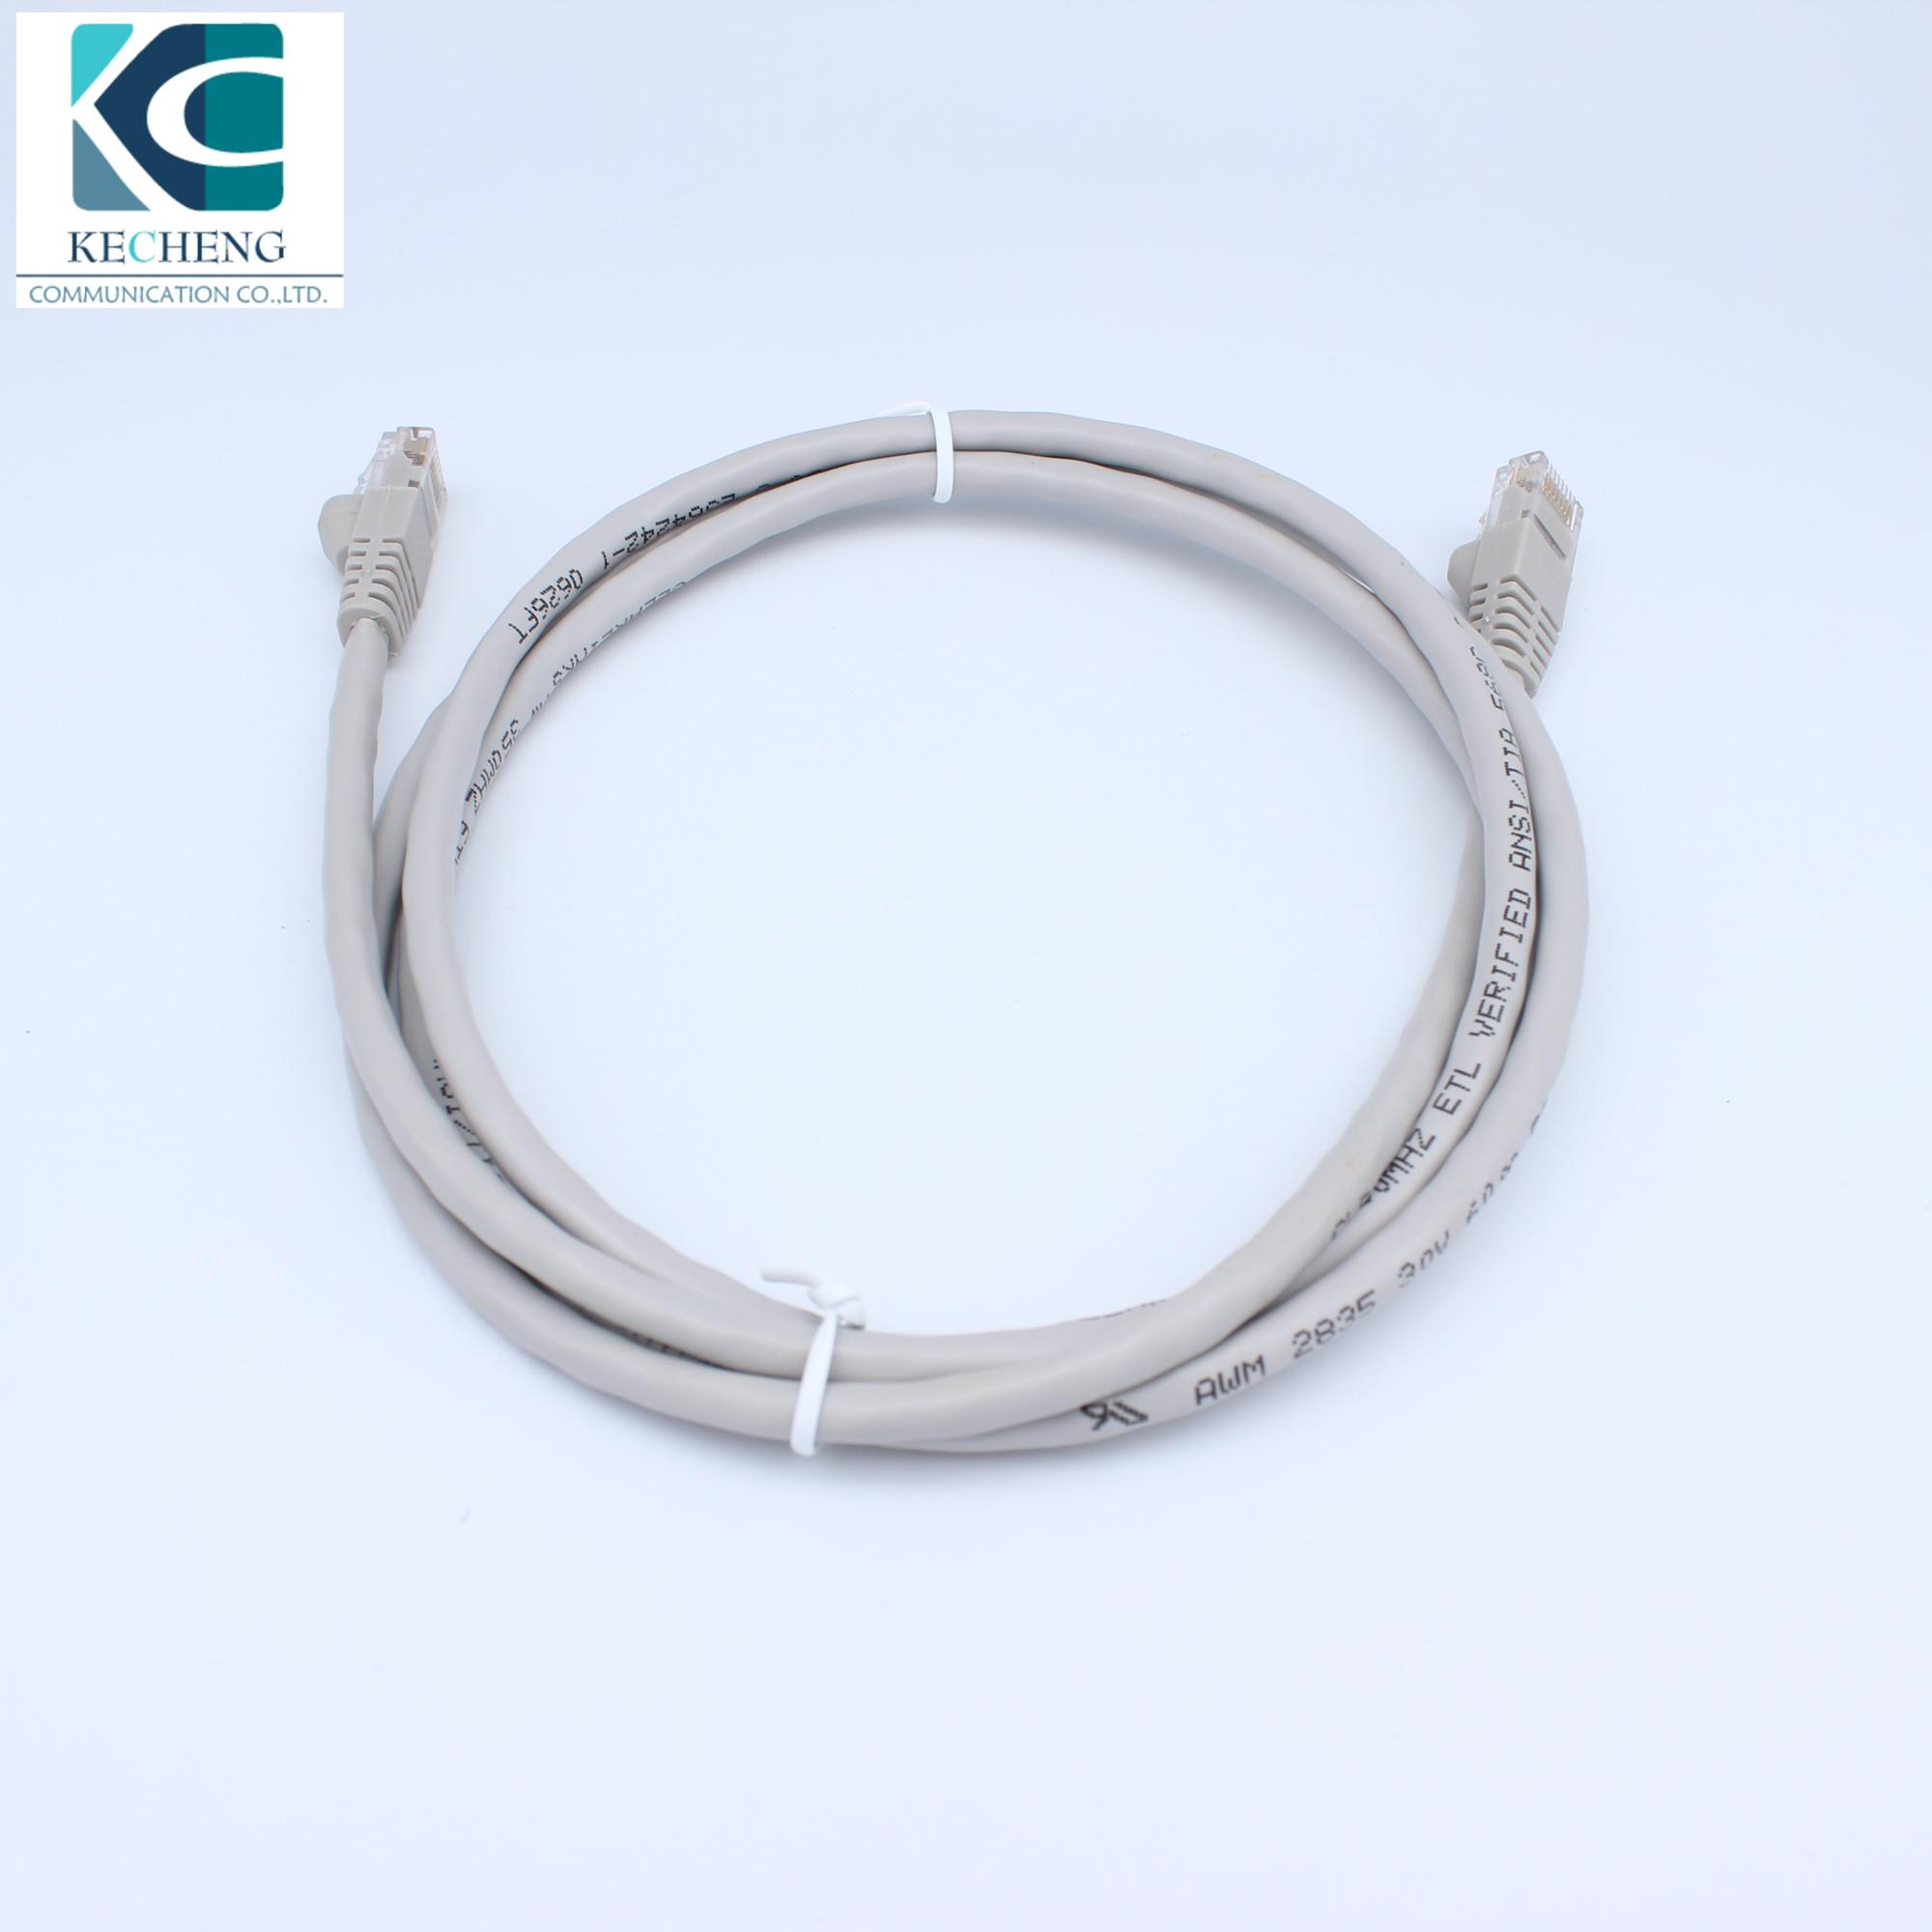 4p bc cca cat5e cat6 cat6a cat7 lan ethernet network cable cat5e patch cord cable utp amp cat6 cable